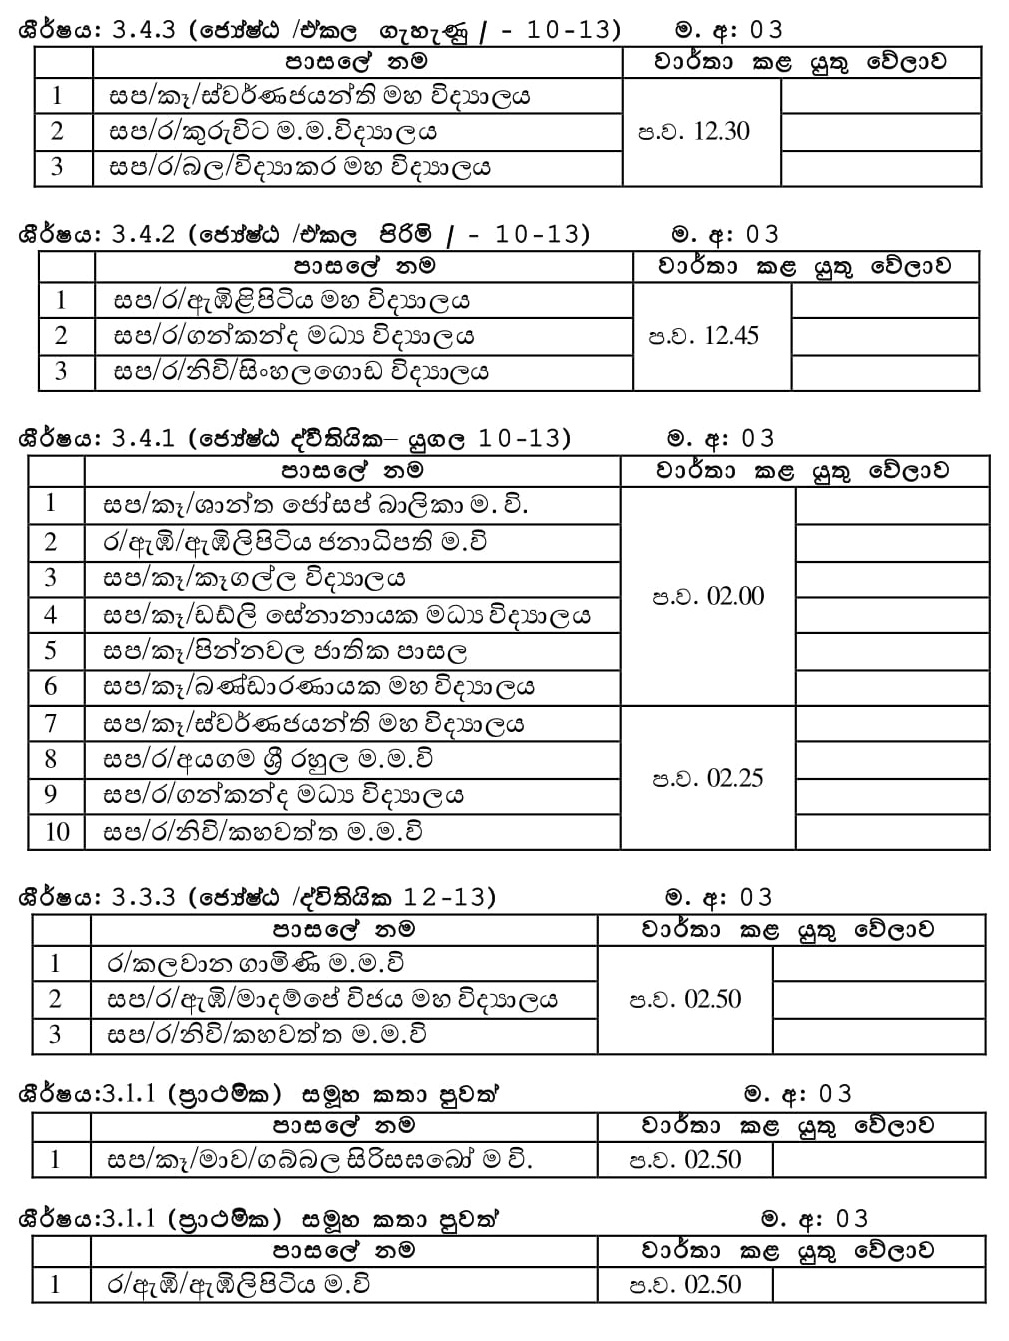 Time Table : All island Drama Competition (UVA and